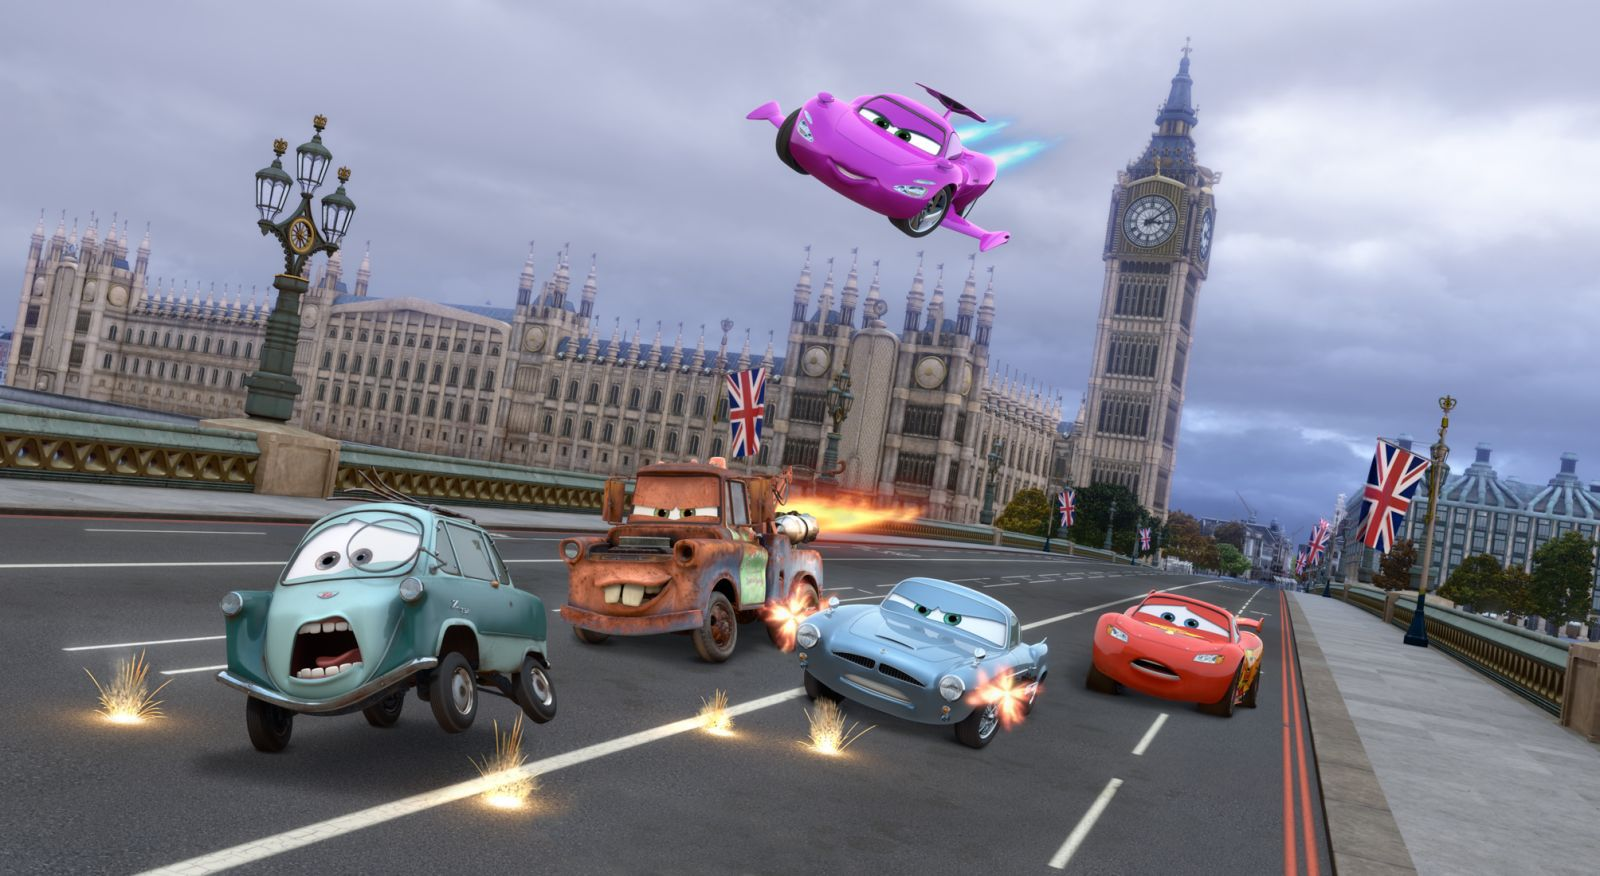 """""""CARS 2"""" (L-R) Professor Z (voice by Thomas Kretschmann), Mater (voice by Larry the Cable Guy), Holley Shiftwell (voice by Emily Mortimer), Finn McMissile (voice by Michael Caine), Lightning McQueen (voice by Owen Wilson) ©Disney/Pixar. All Rights Reserved."""